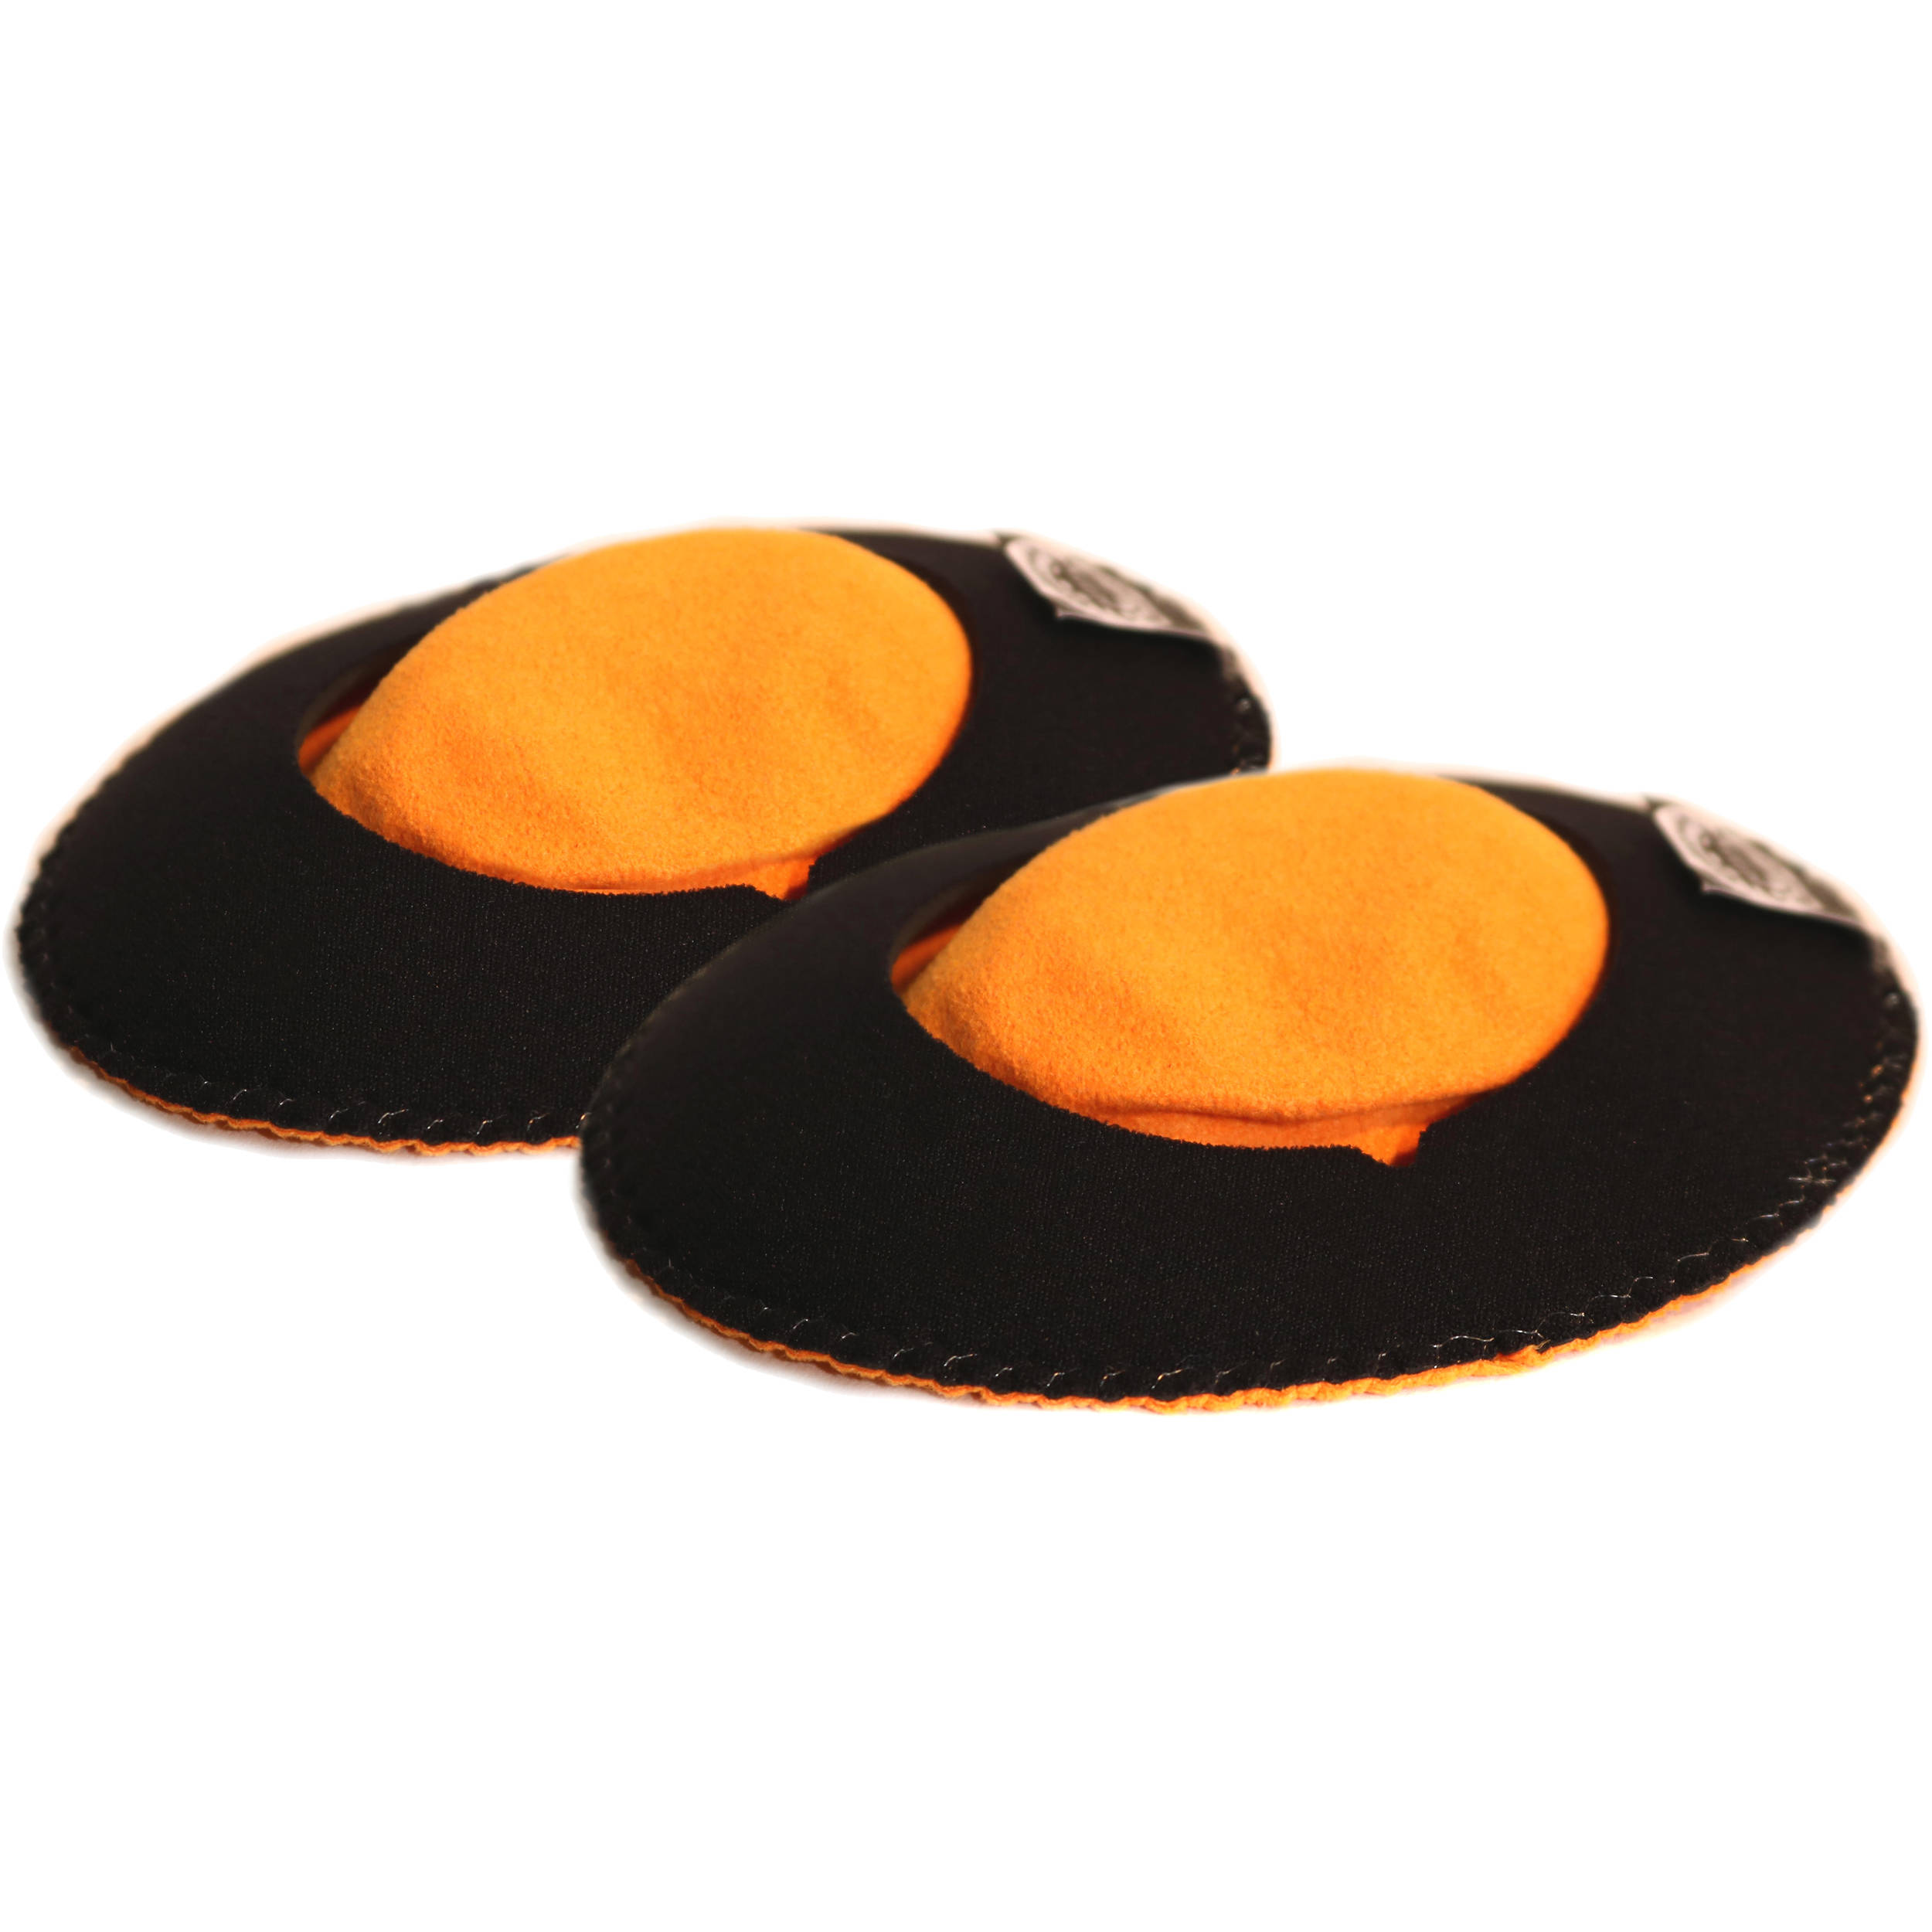 Bluestar CanSkins Earcup Covers for Sony MDR-7510 Headphones (Pair, Orange)